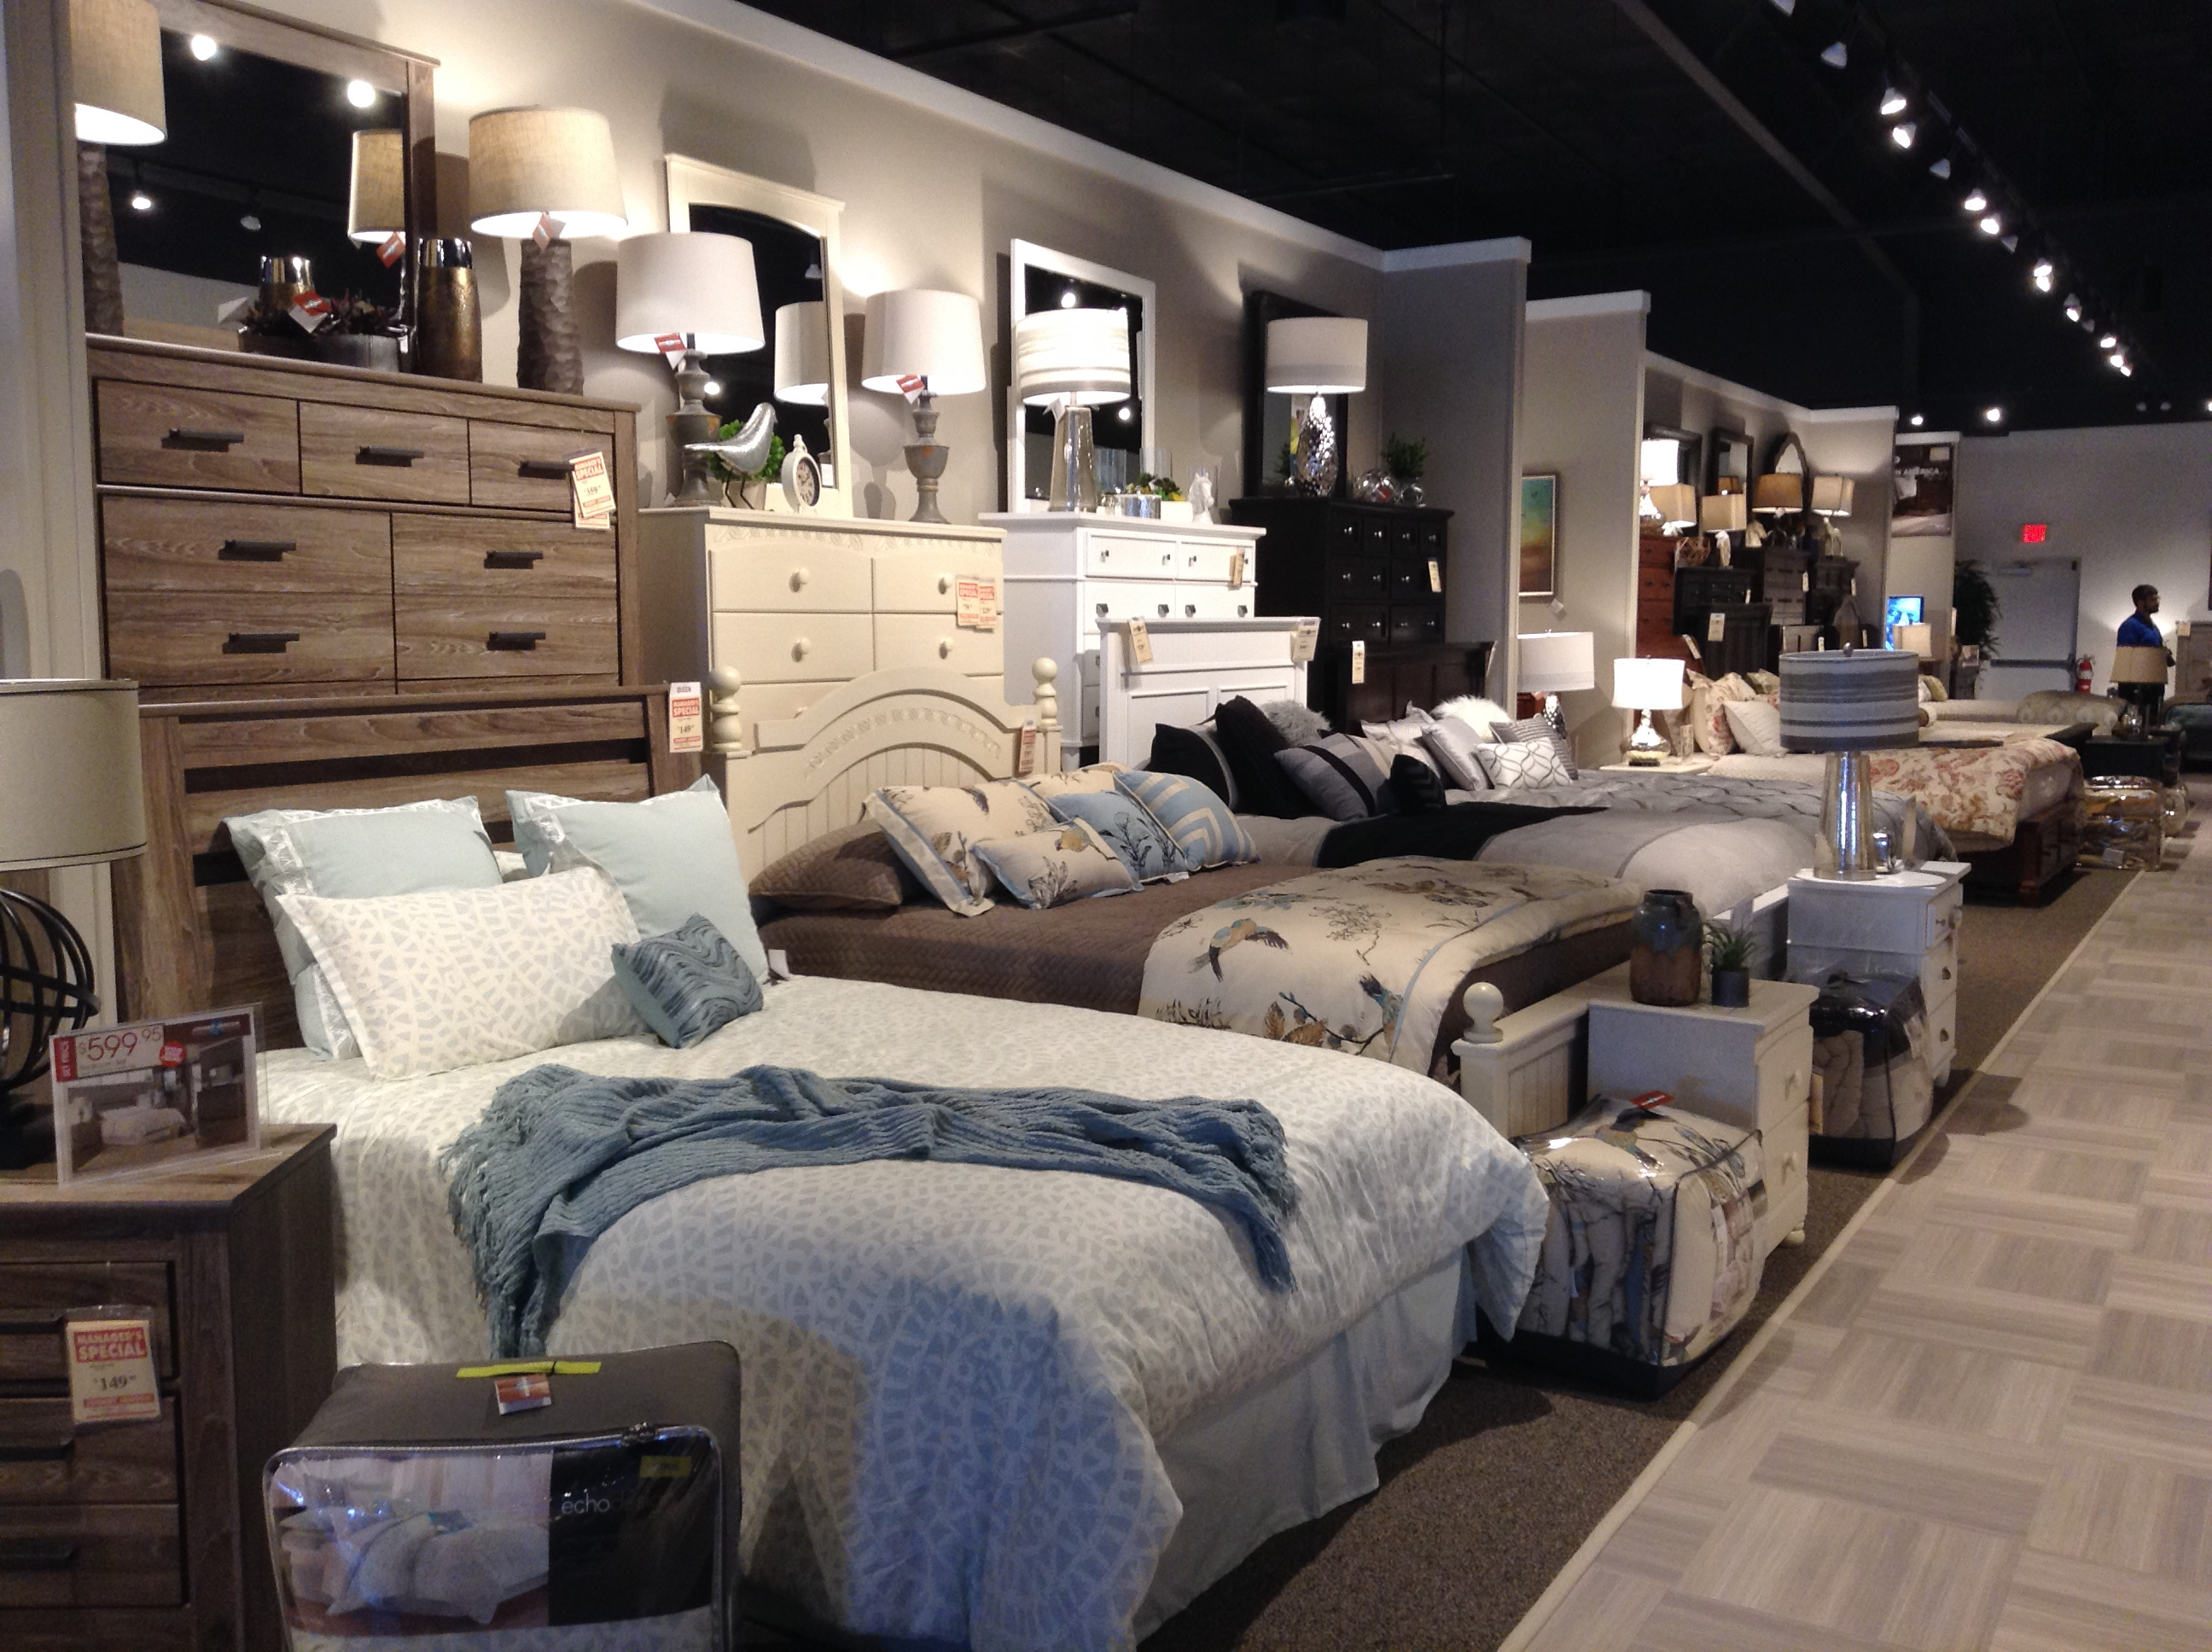 It employs vertical efficiency to display a lot of bedroom groups (ranging from about $999 to $2399) in a small space.